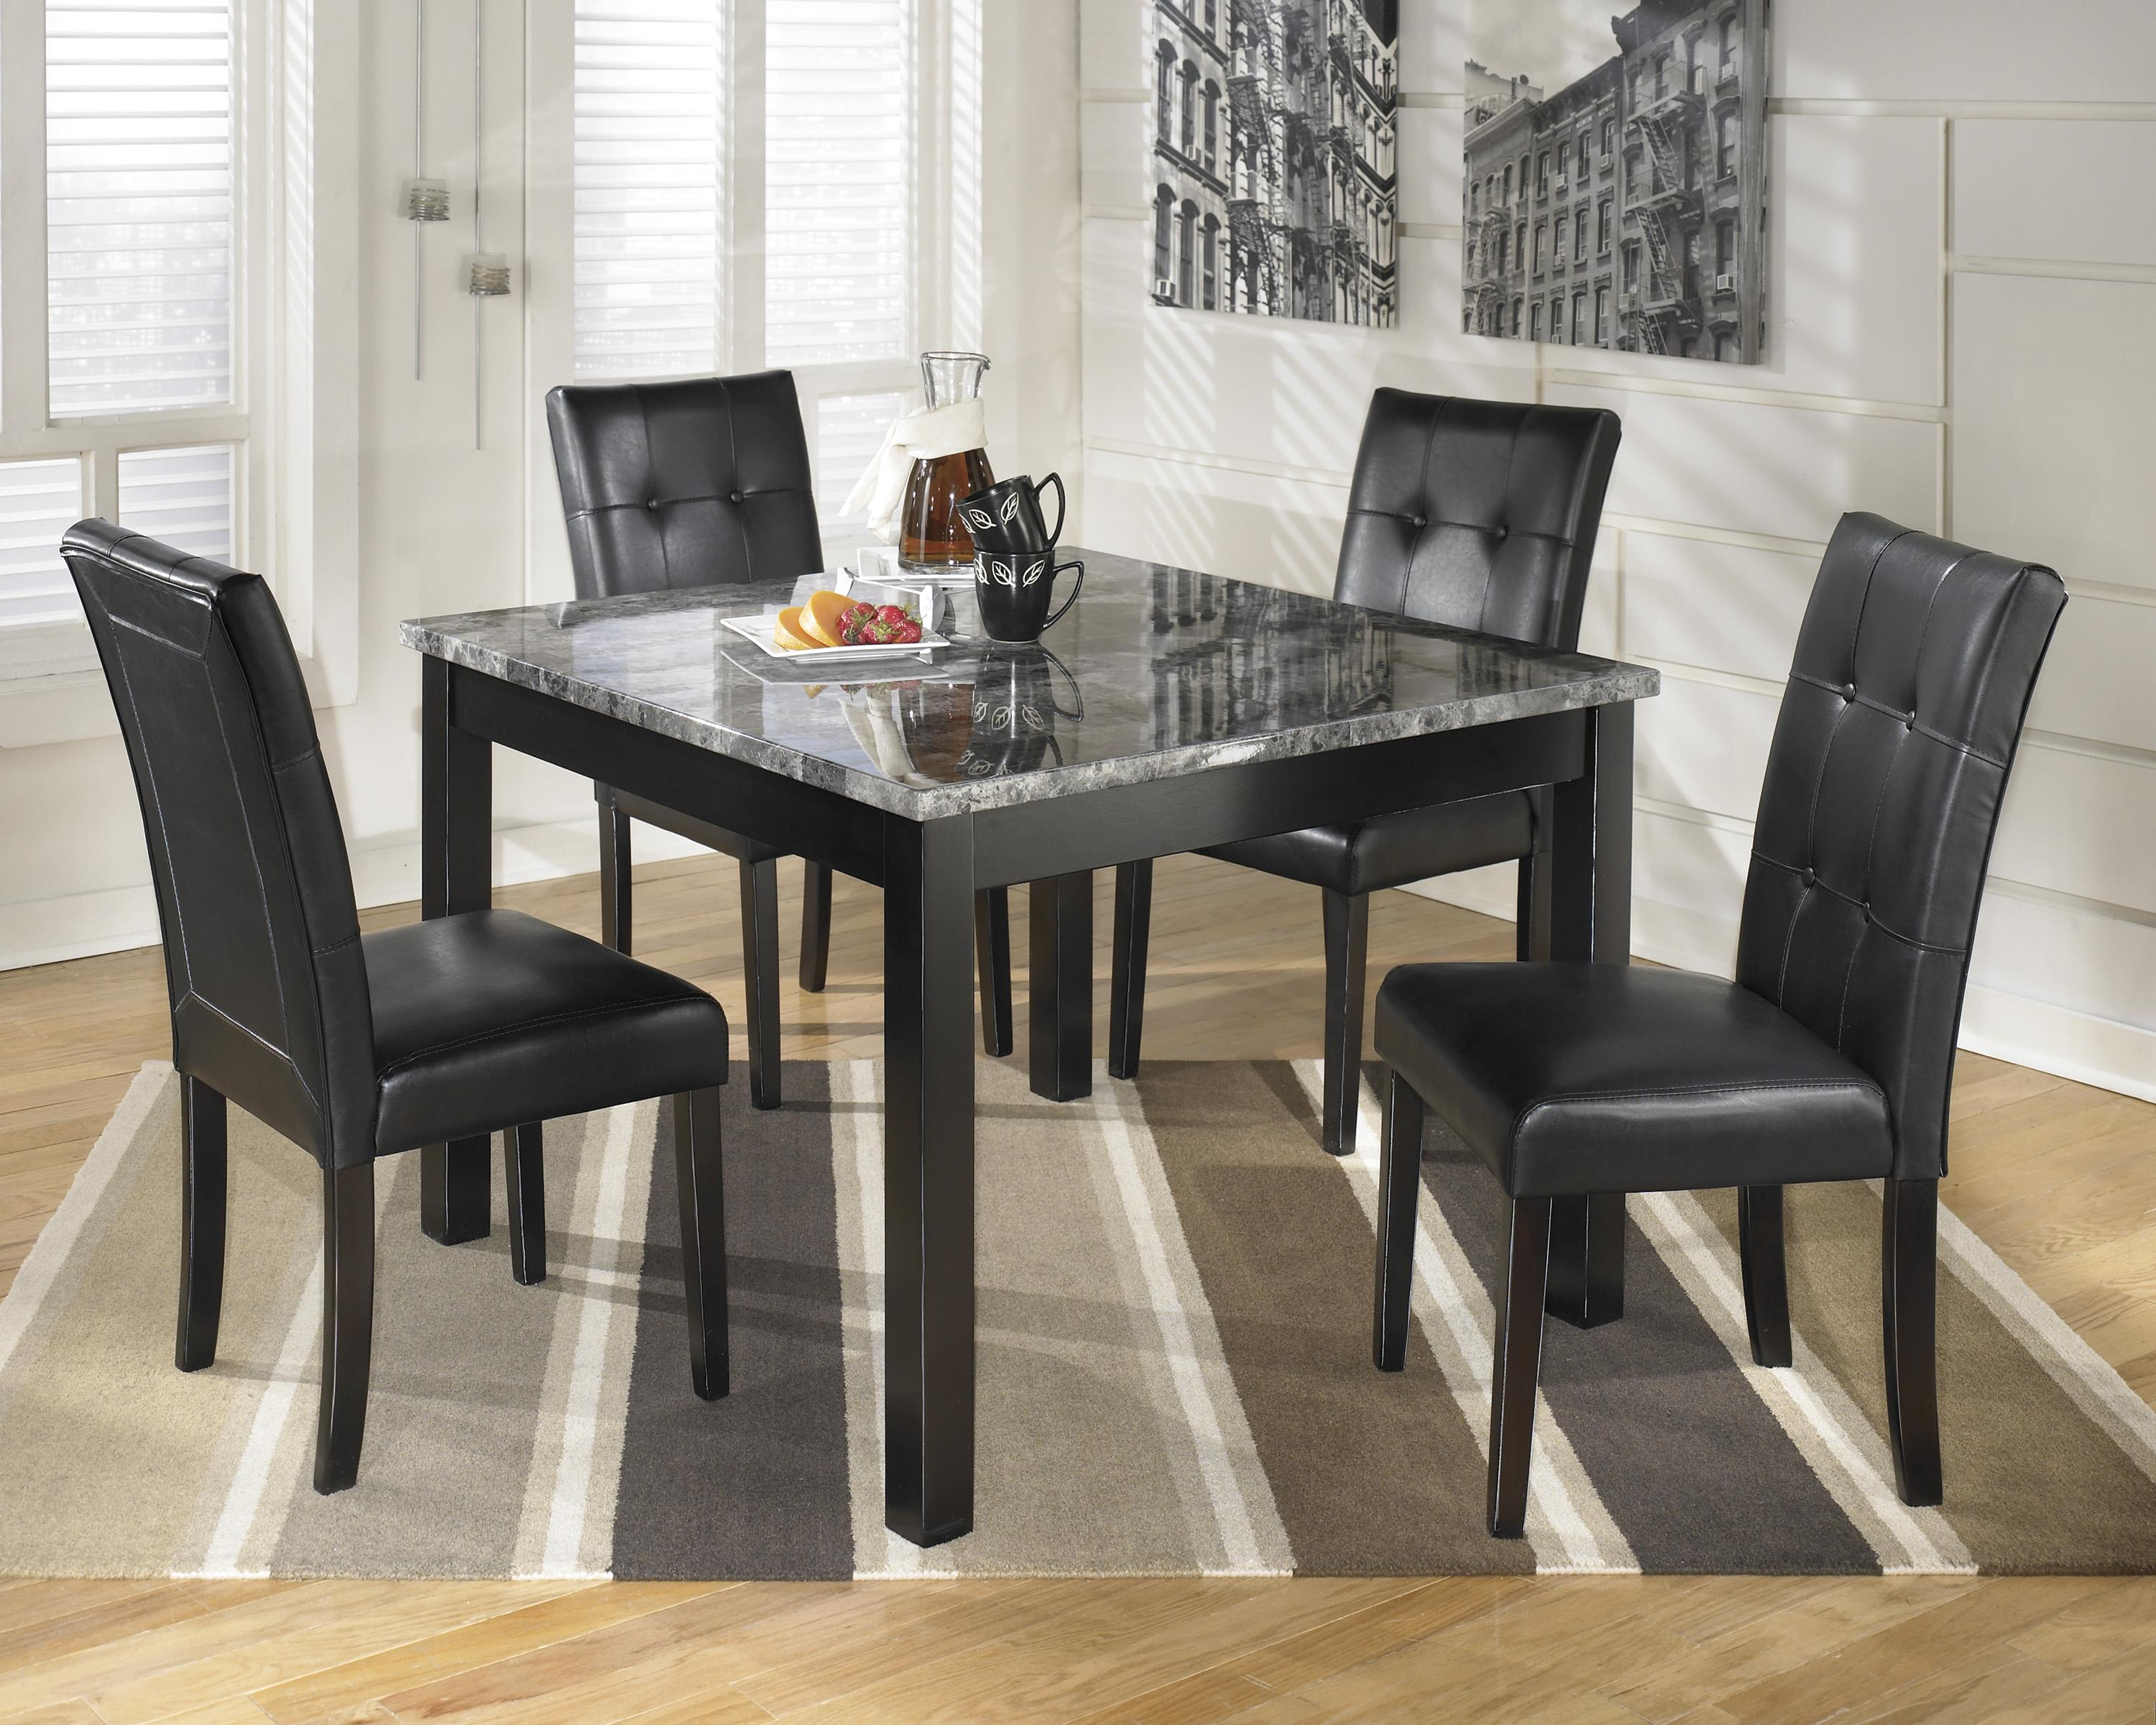 square kitchen table Signature Design by Ashley Furniture Maysville Square Dining Room Table Set Item Number D